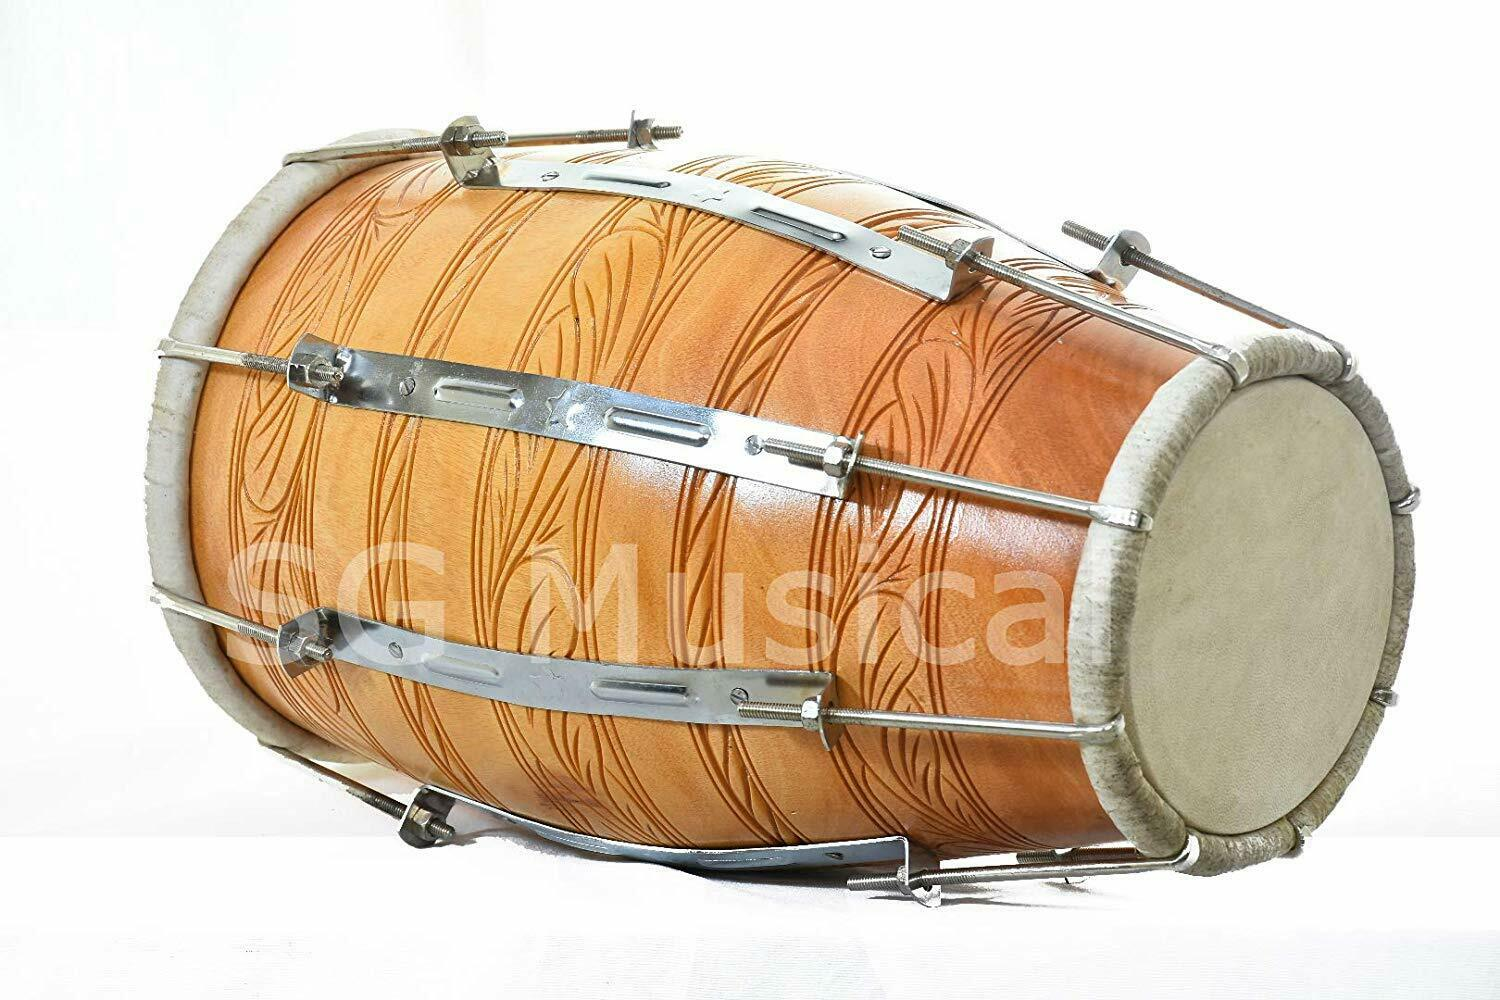 SG Musical - Dholak, Mango Wood, Bolt-Tuned, Tuning Spanner, Carry Bag